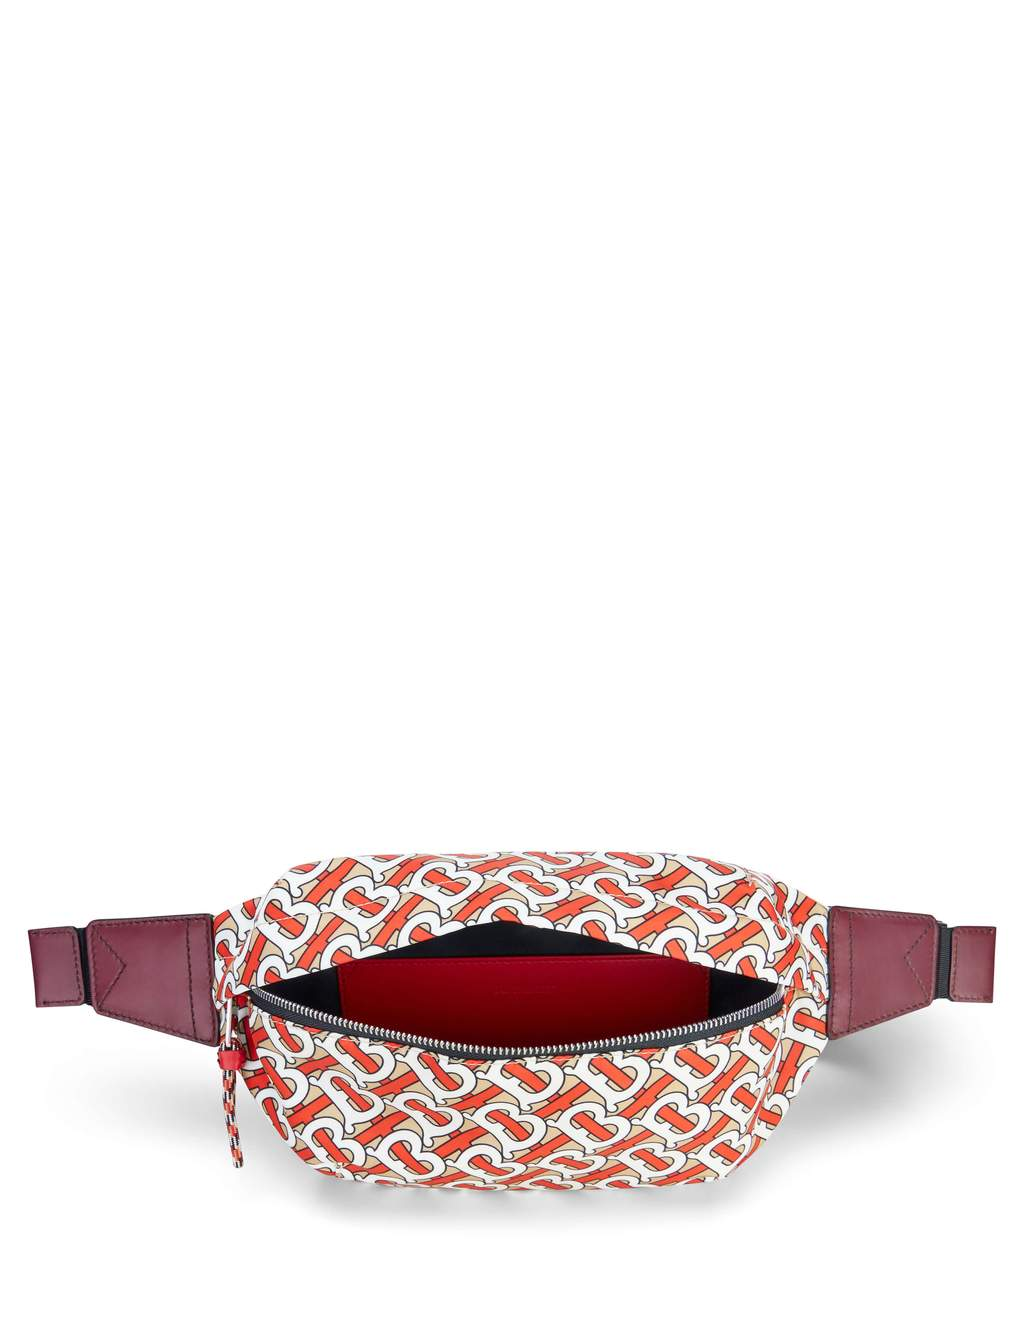 Burberry Men's Medium Monogram Print Bum Bag in Vermillion Nylon 8010744A4777